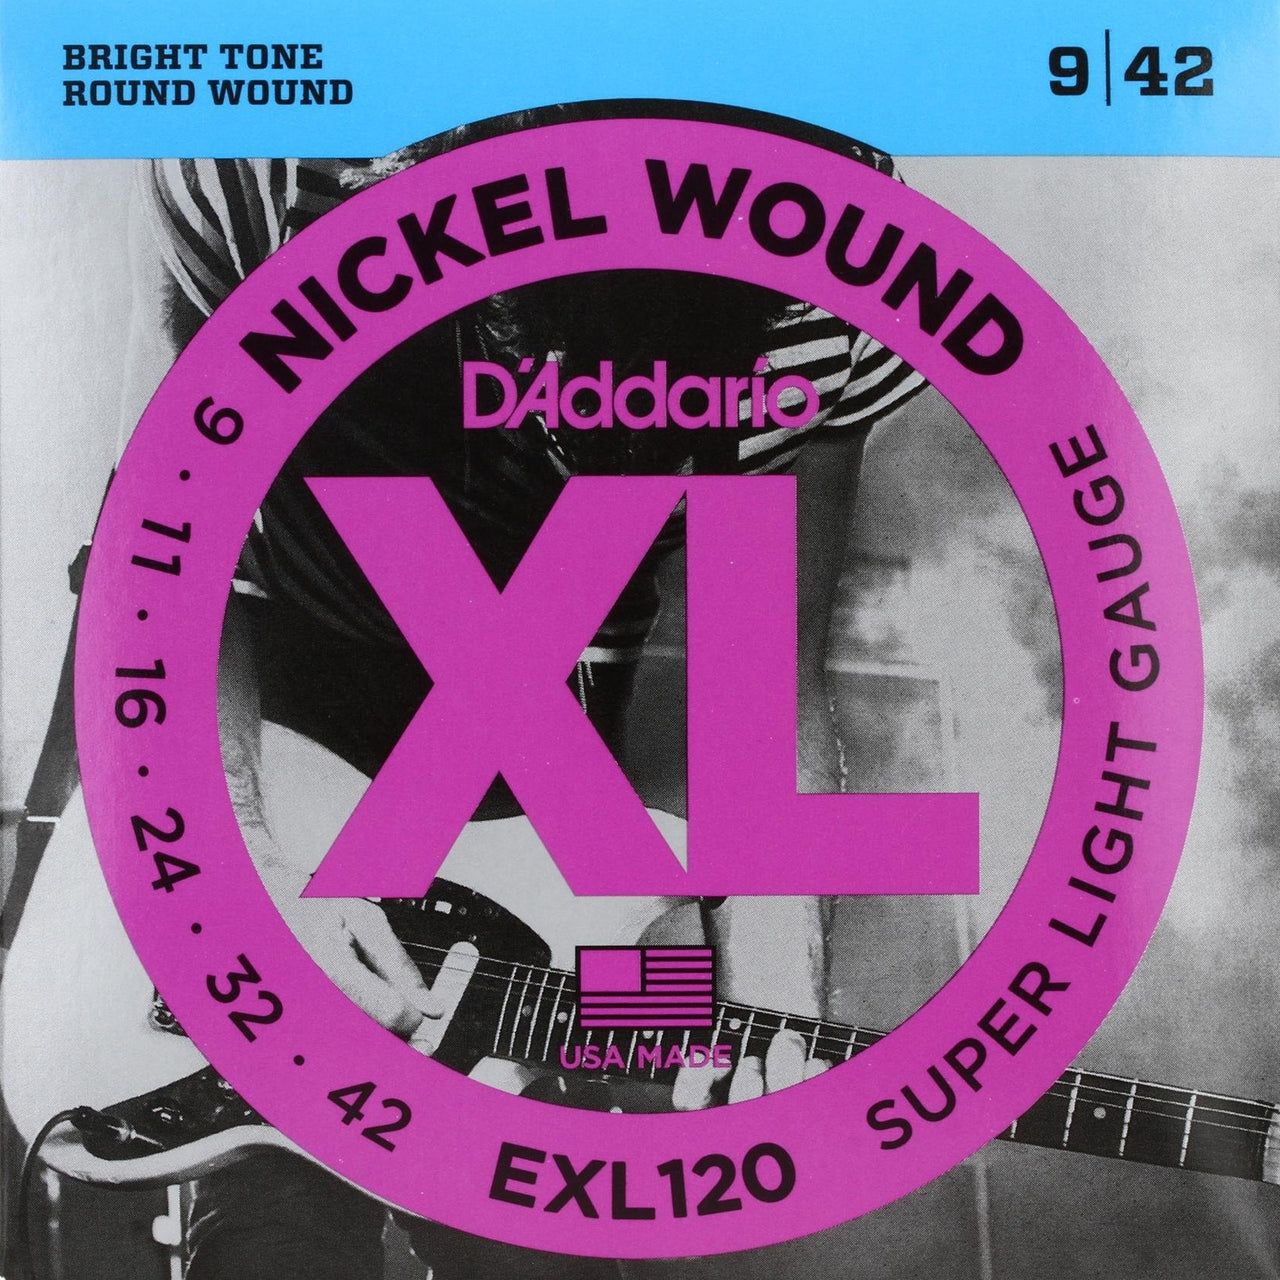 D'Addario EXL120 XL Electric Guitar Strings - Super Light - 9-42